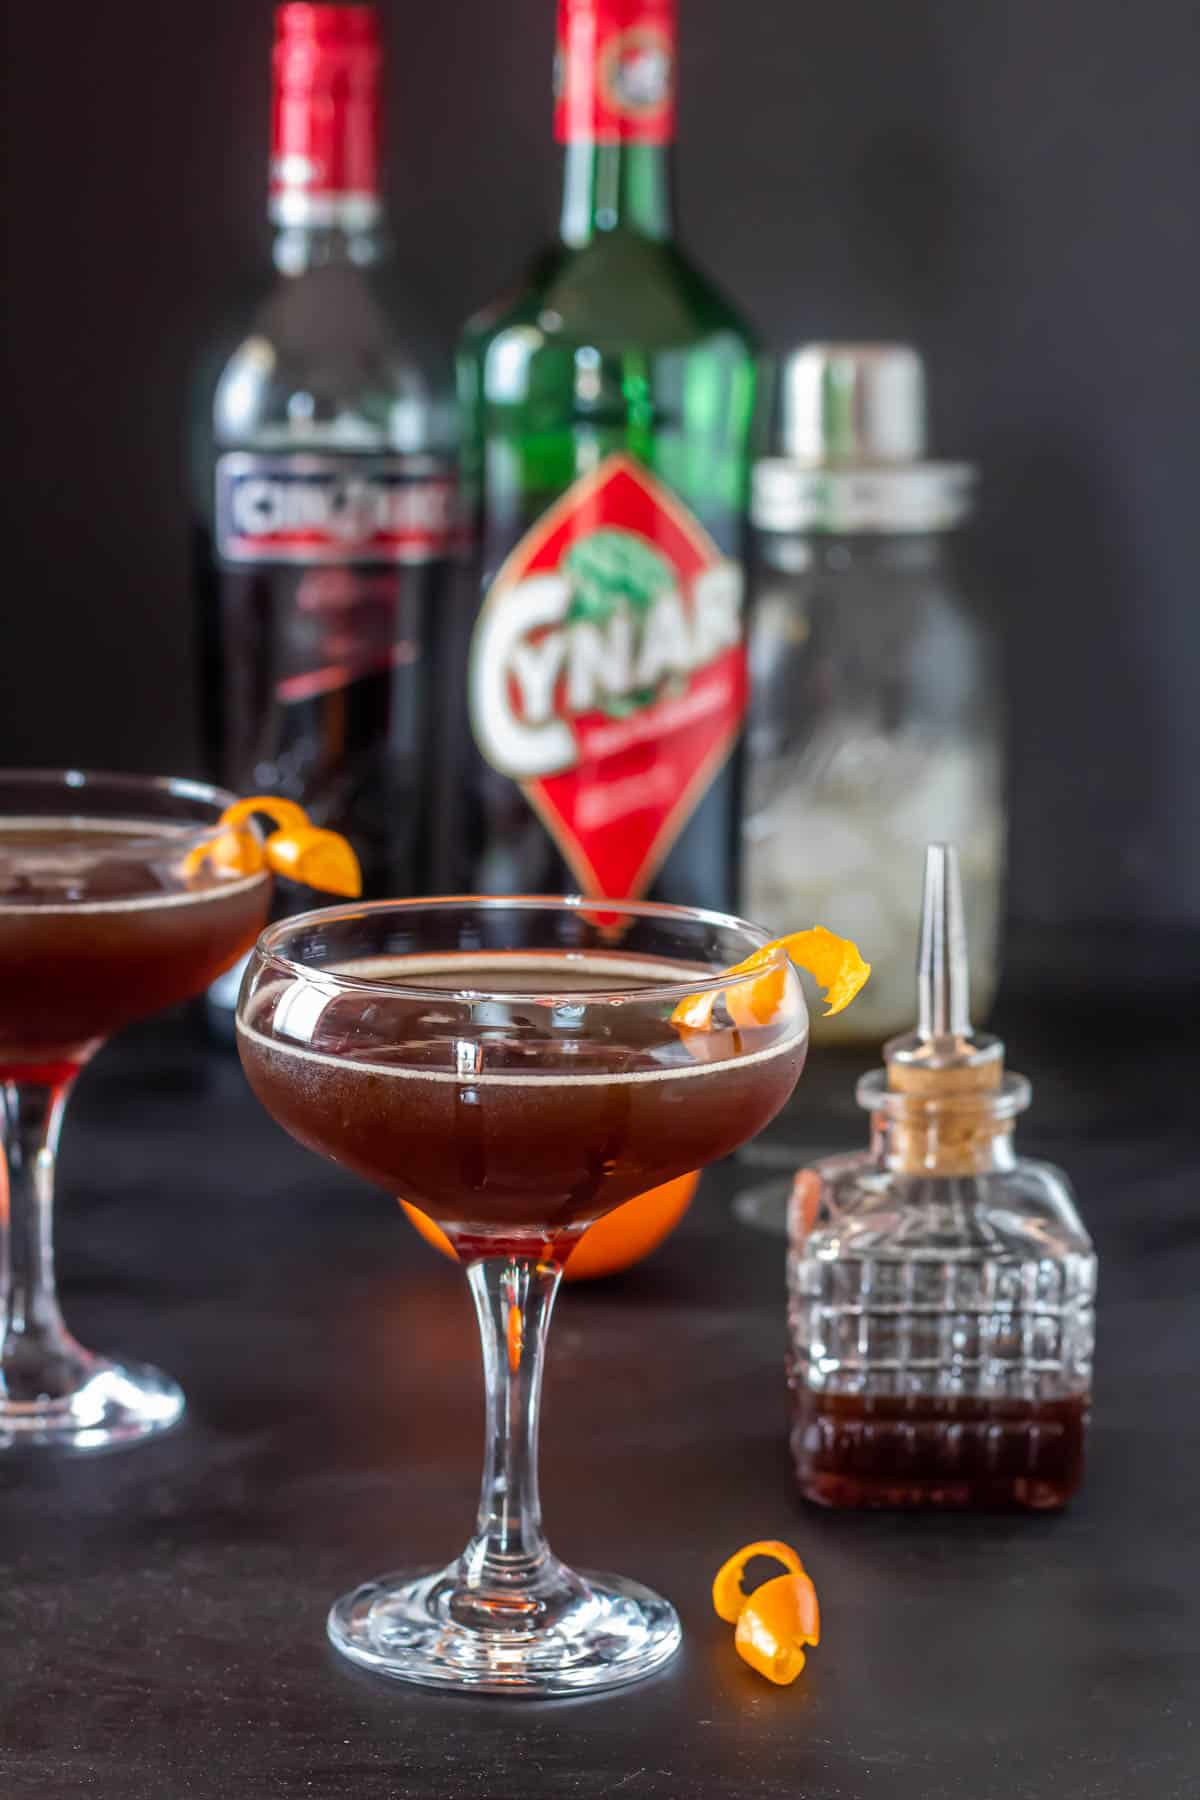 Mid-Summer's Night Cynar and Vermouth Cocktail - a dark mahogany cynar and vermouth cocktail in a coupe glass with a bottle of Cynar in the background.